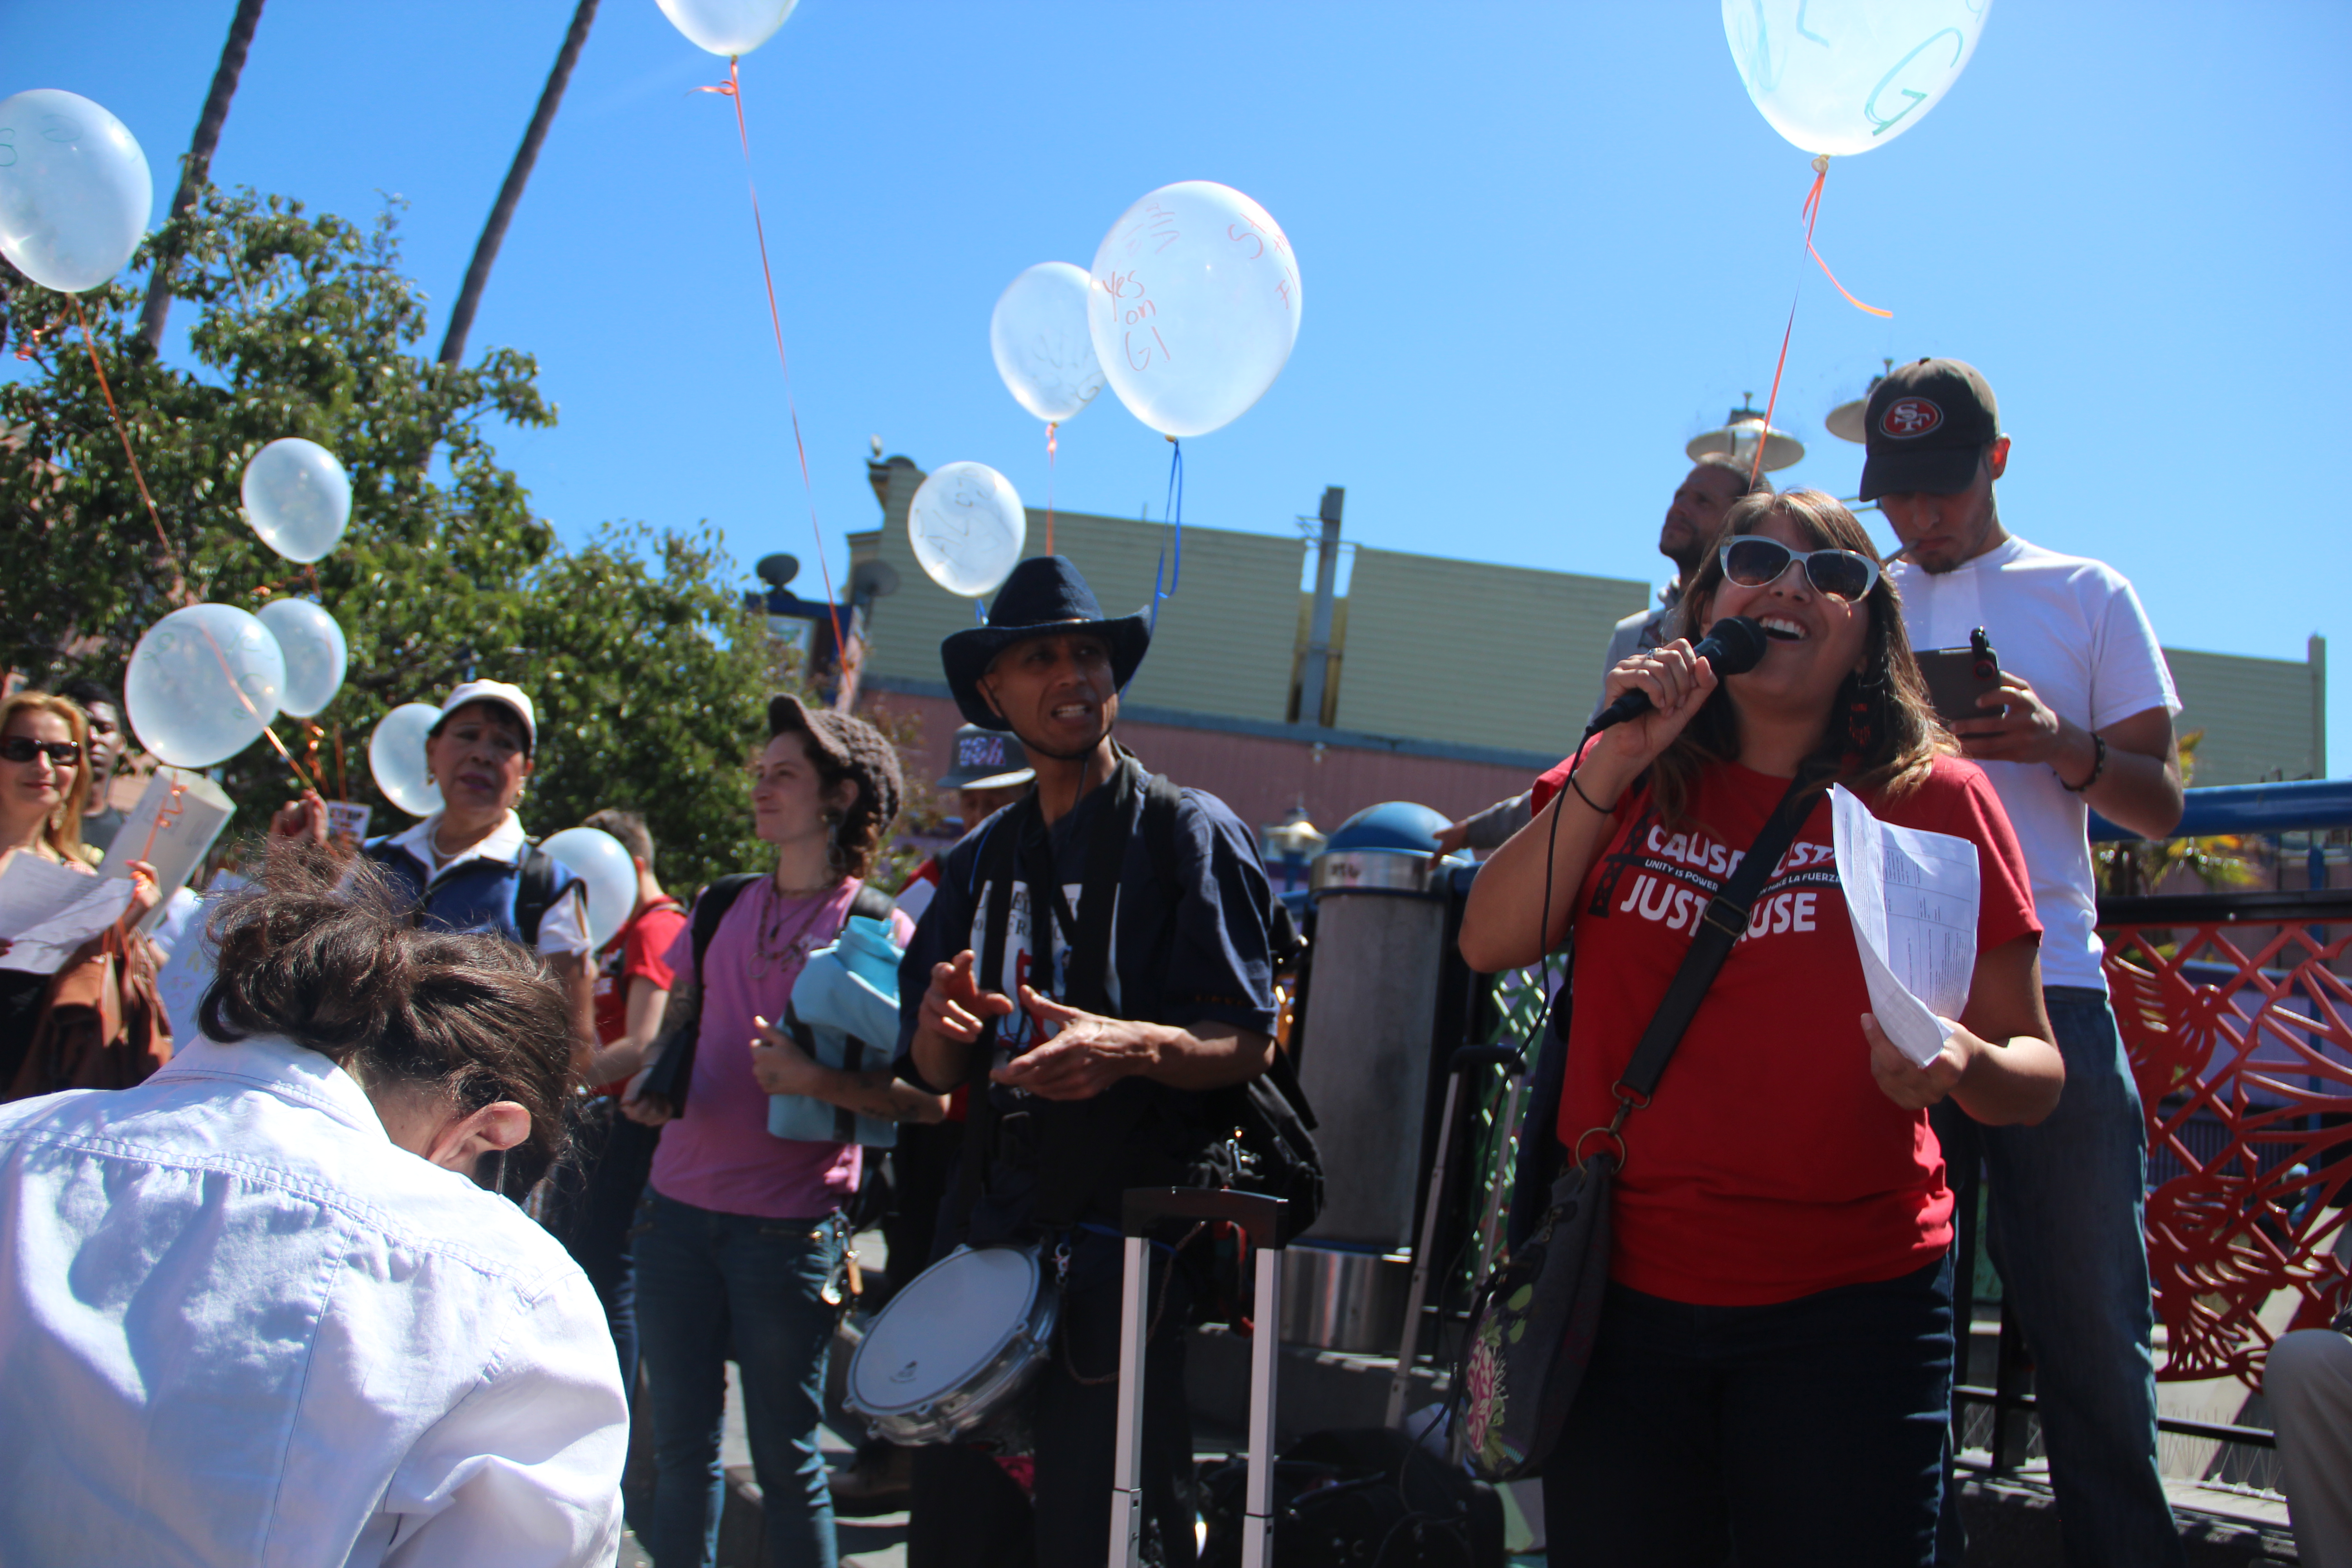 Maria Zamudio, Causa Justa Housing Rights Campaign Lead Organizer, speaks to the crowd at the 16th Street Bart Plaza on Saturday. Photo by Leslie Nguyen-Okwu.